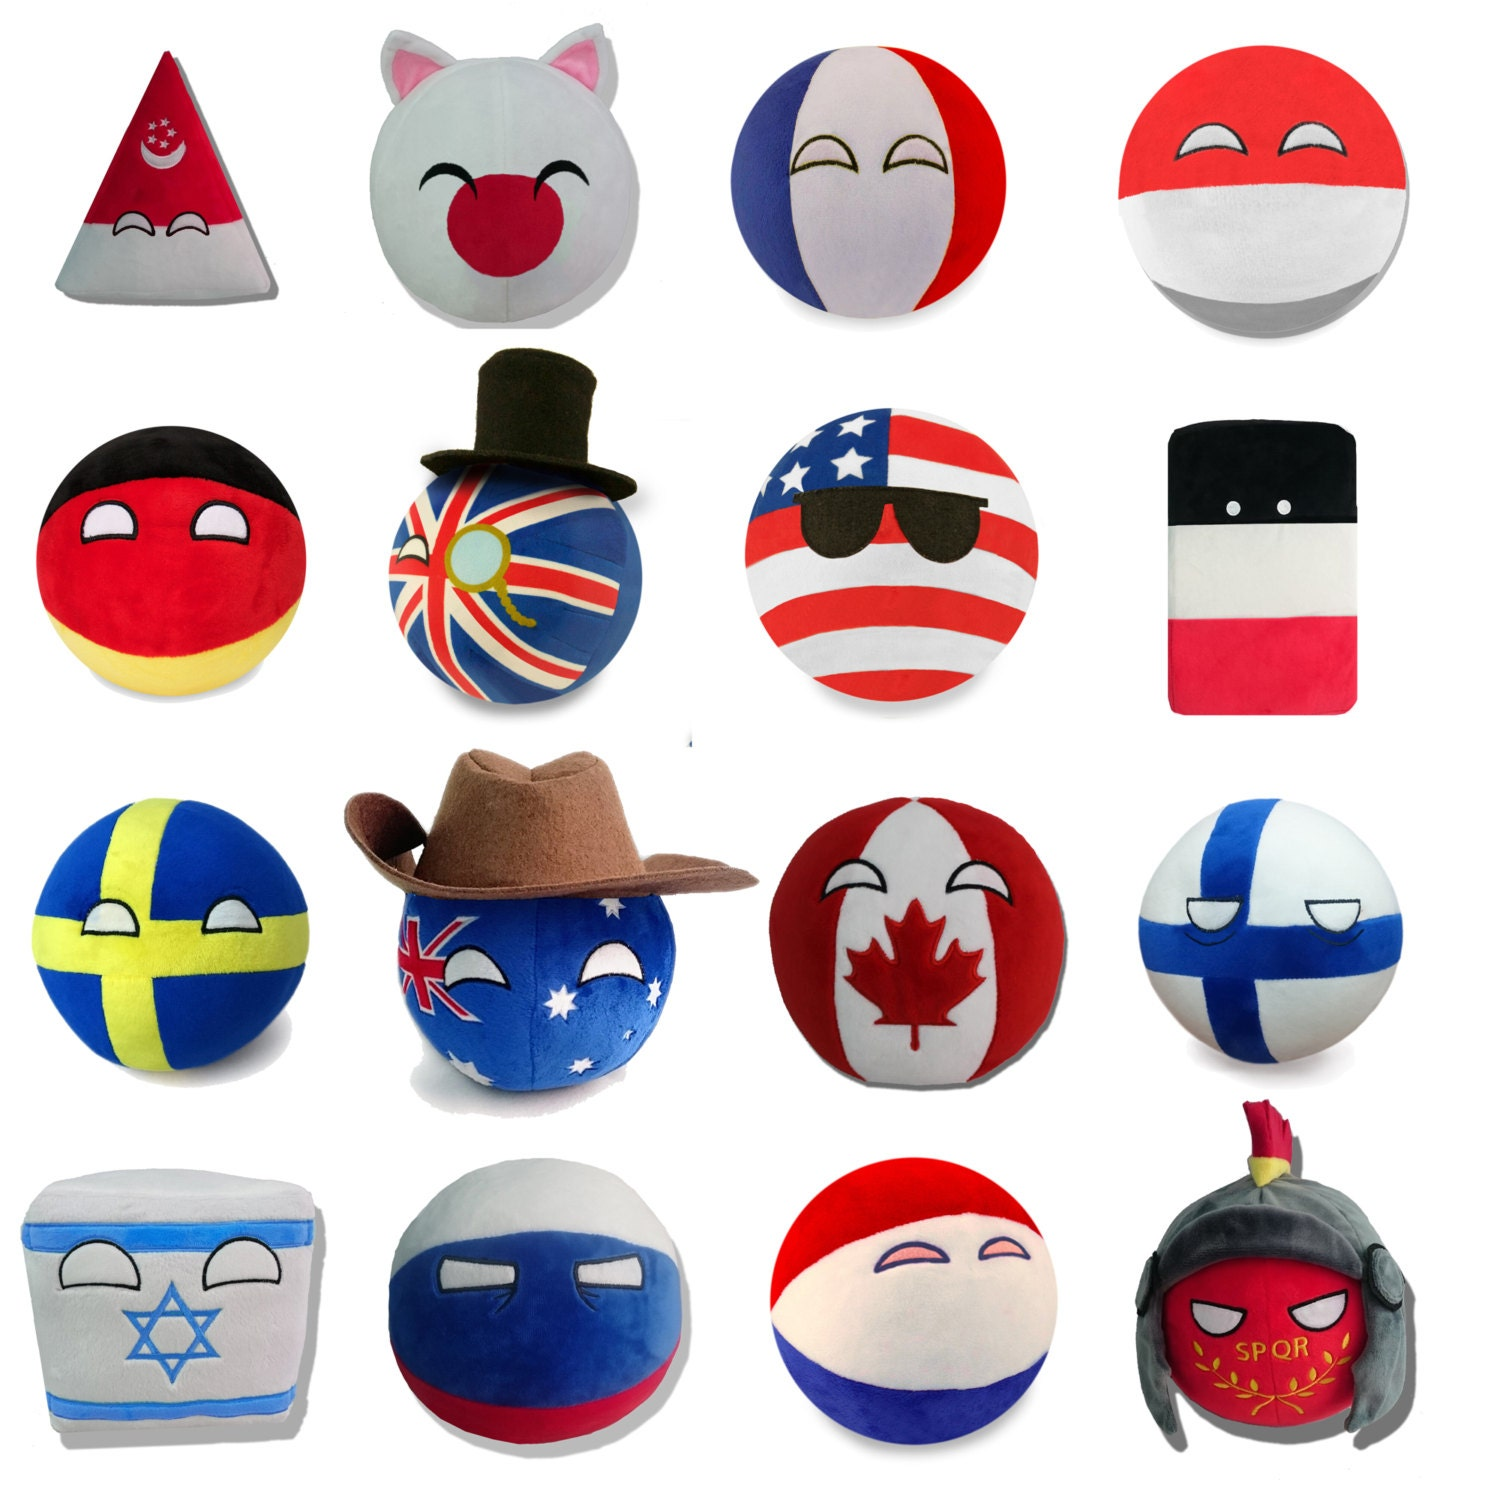 new countryball plushies ive - photo #15